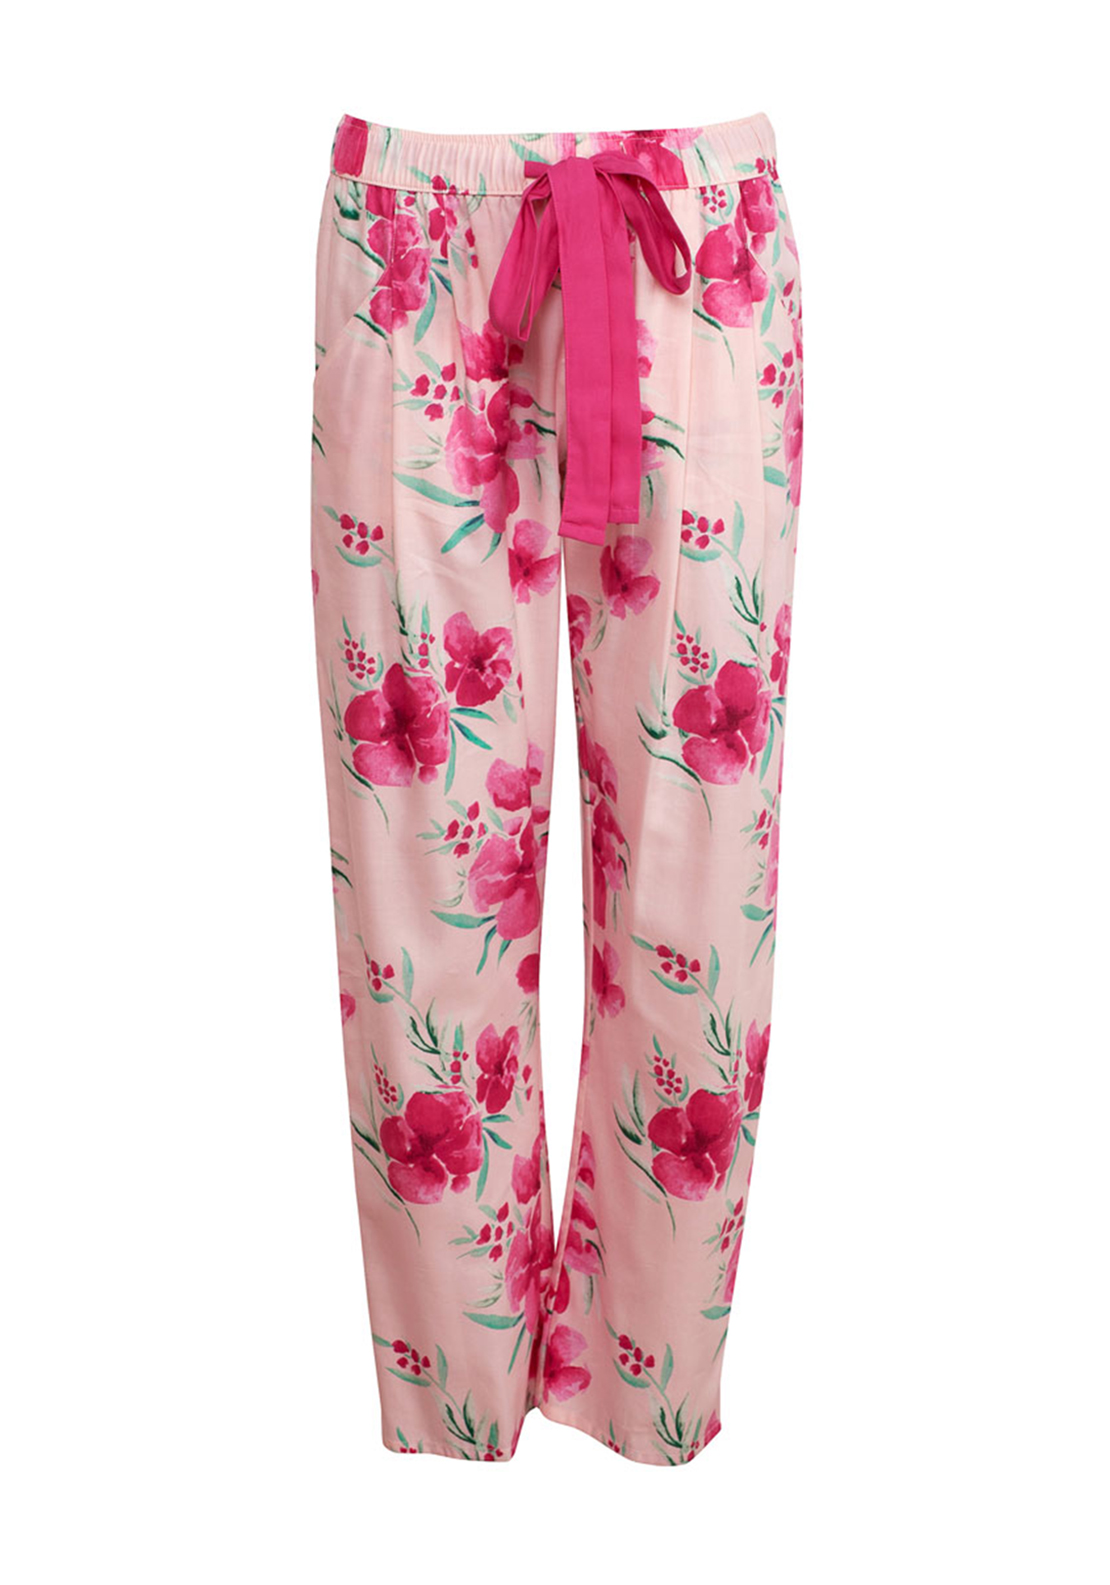 Cyberjammies South Pacific Floral Print Pyjama Bottoms, Pink